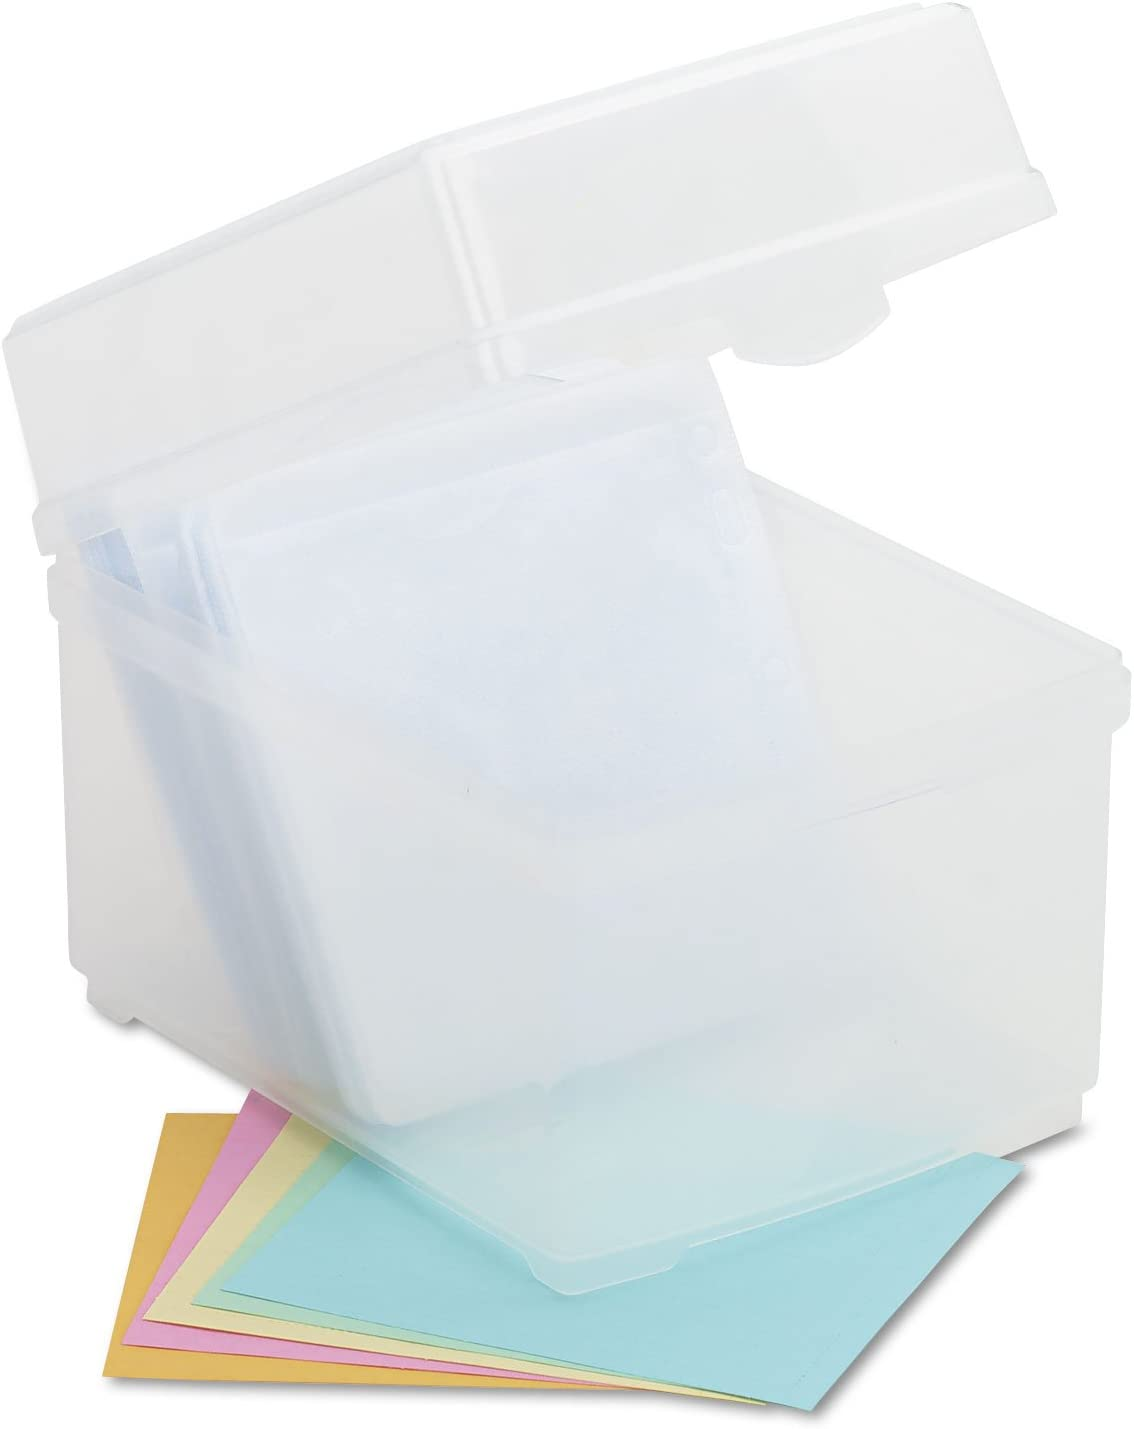 Innovera 39400 CD//DVD Storage Box Holds 100 Discs Clear